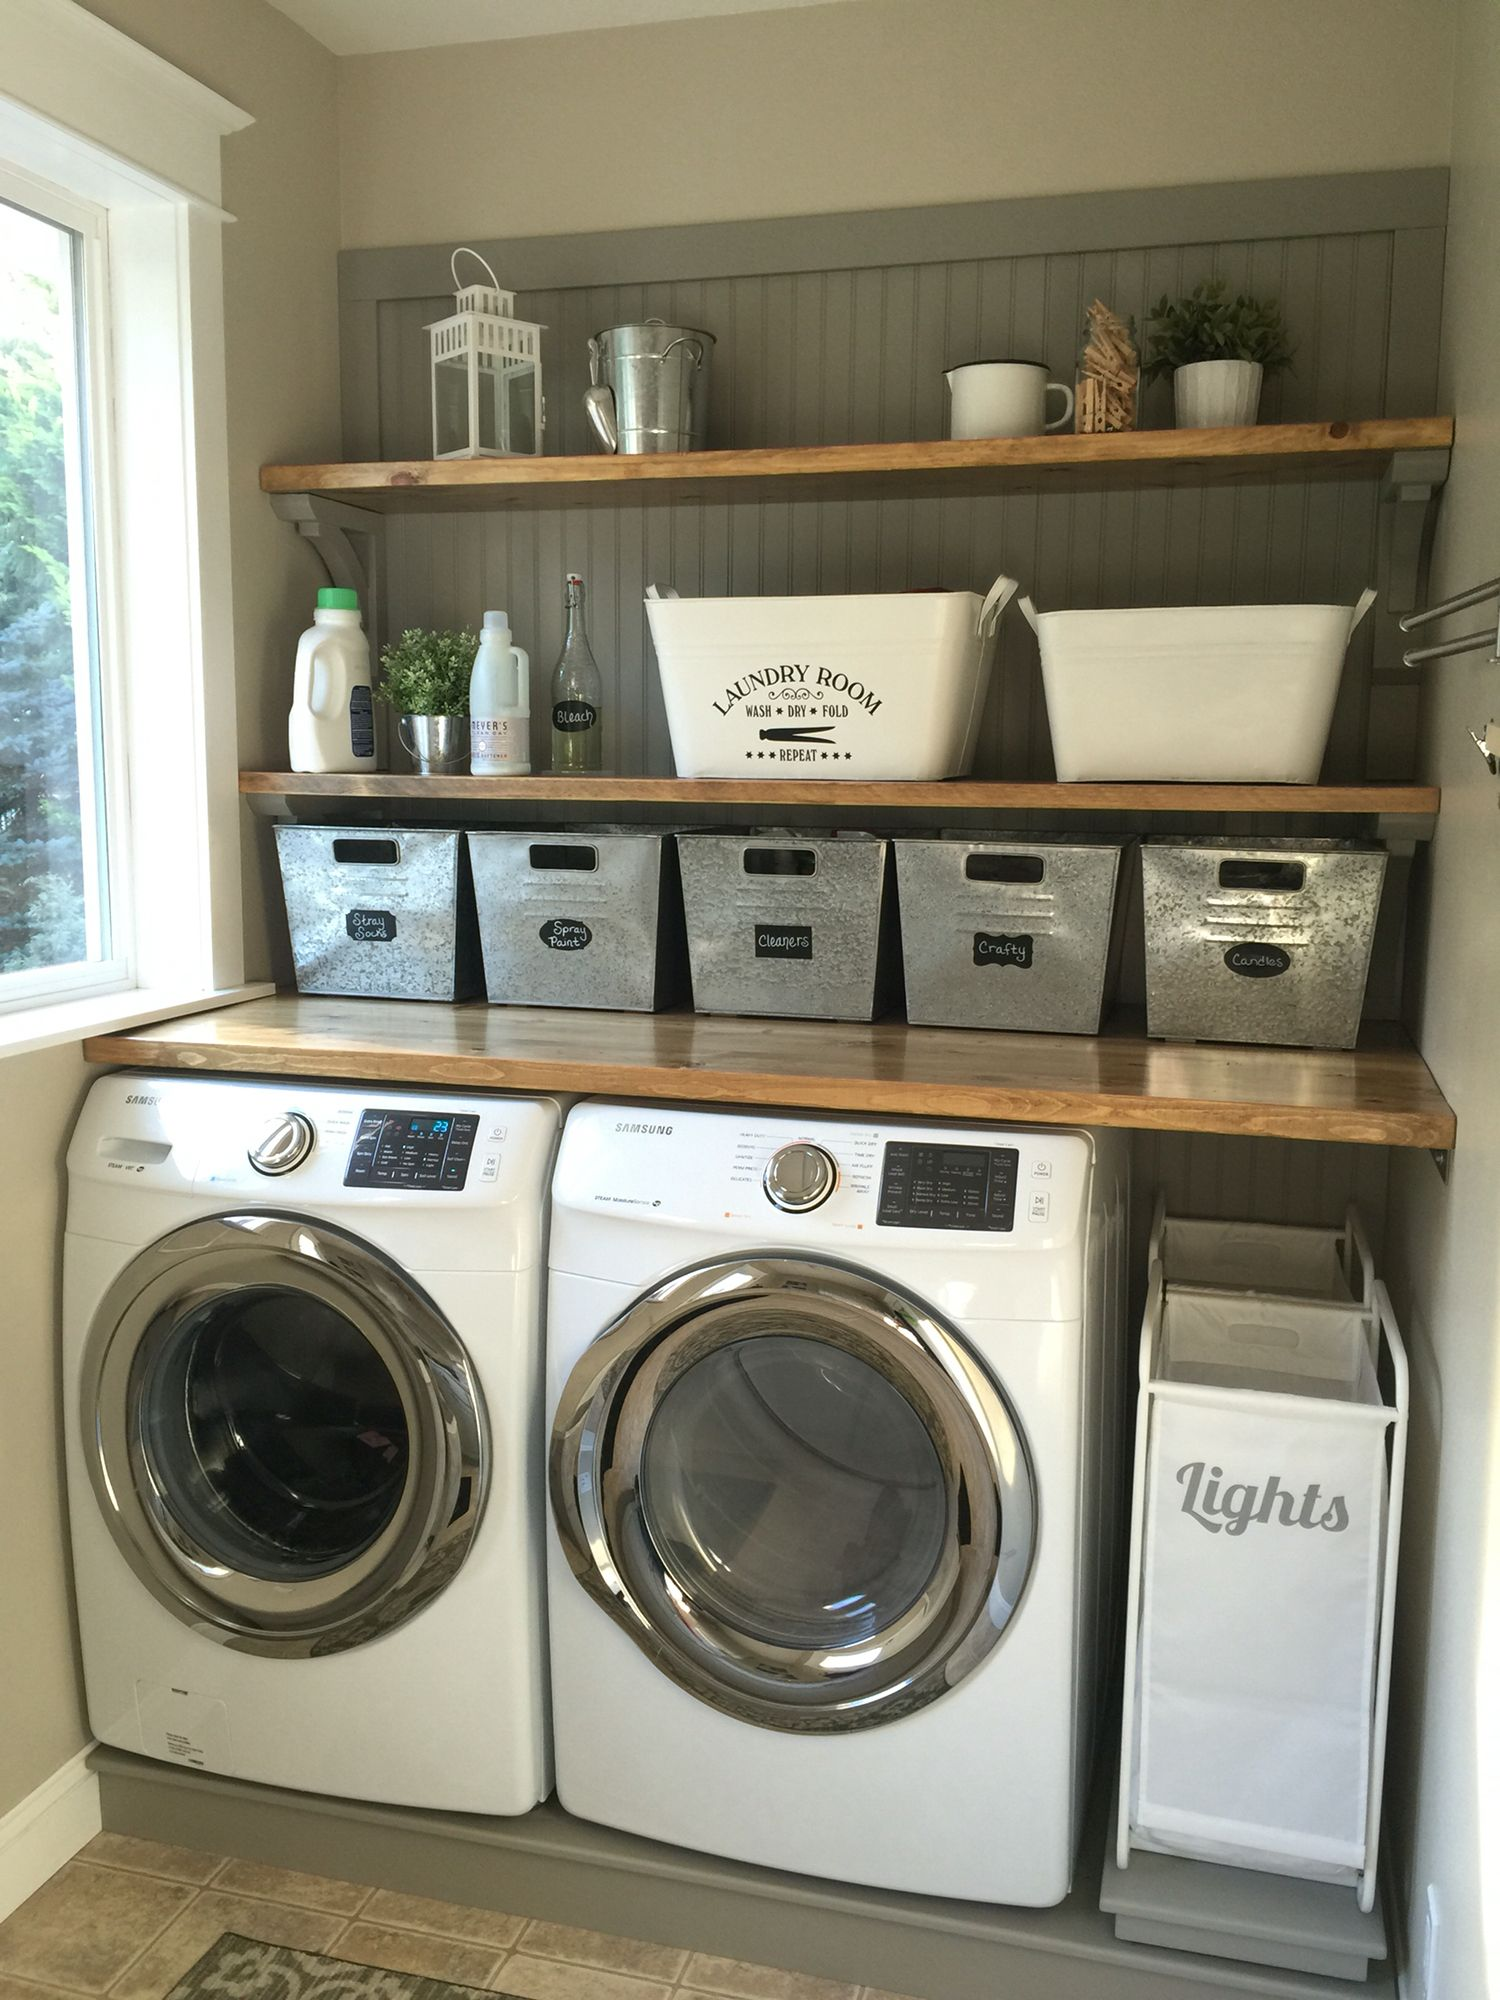 Laundry Room Ideas Makeover Wood Counters Tin Totes Pull Out Bins Laundryroommakeover